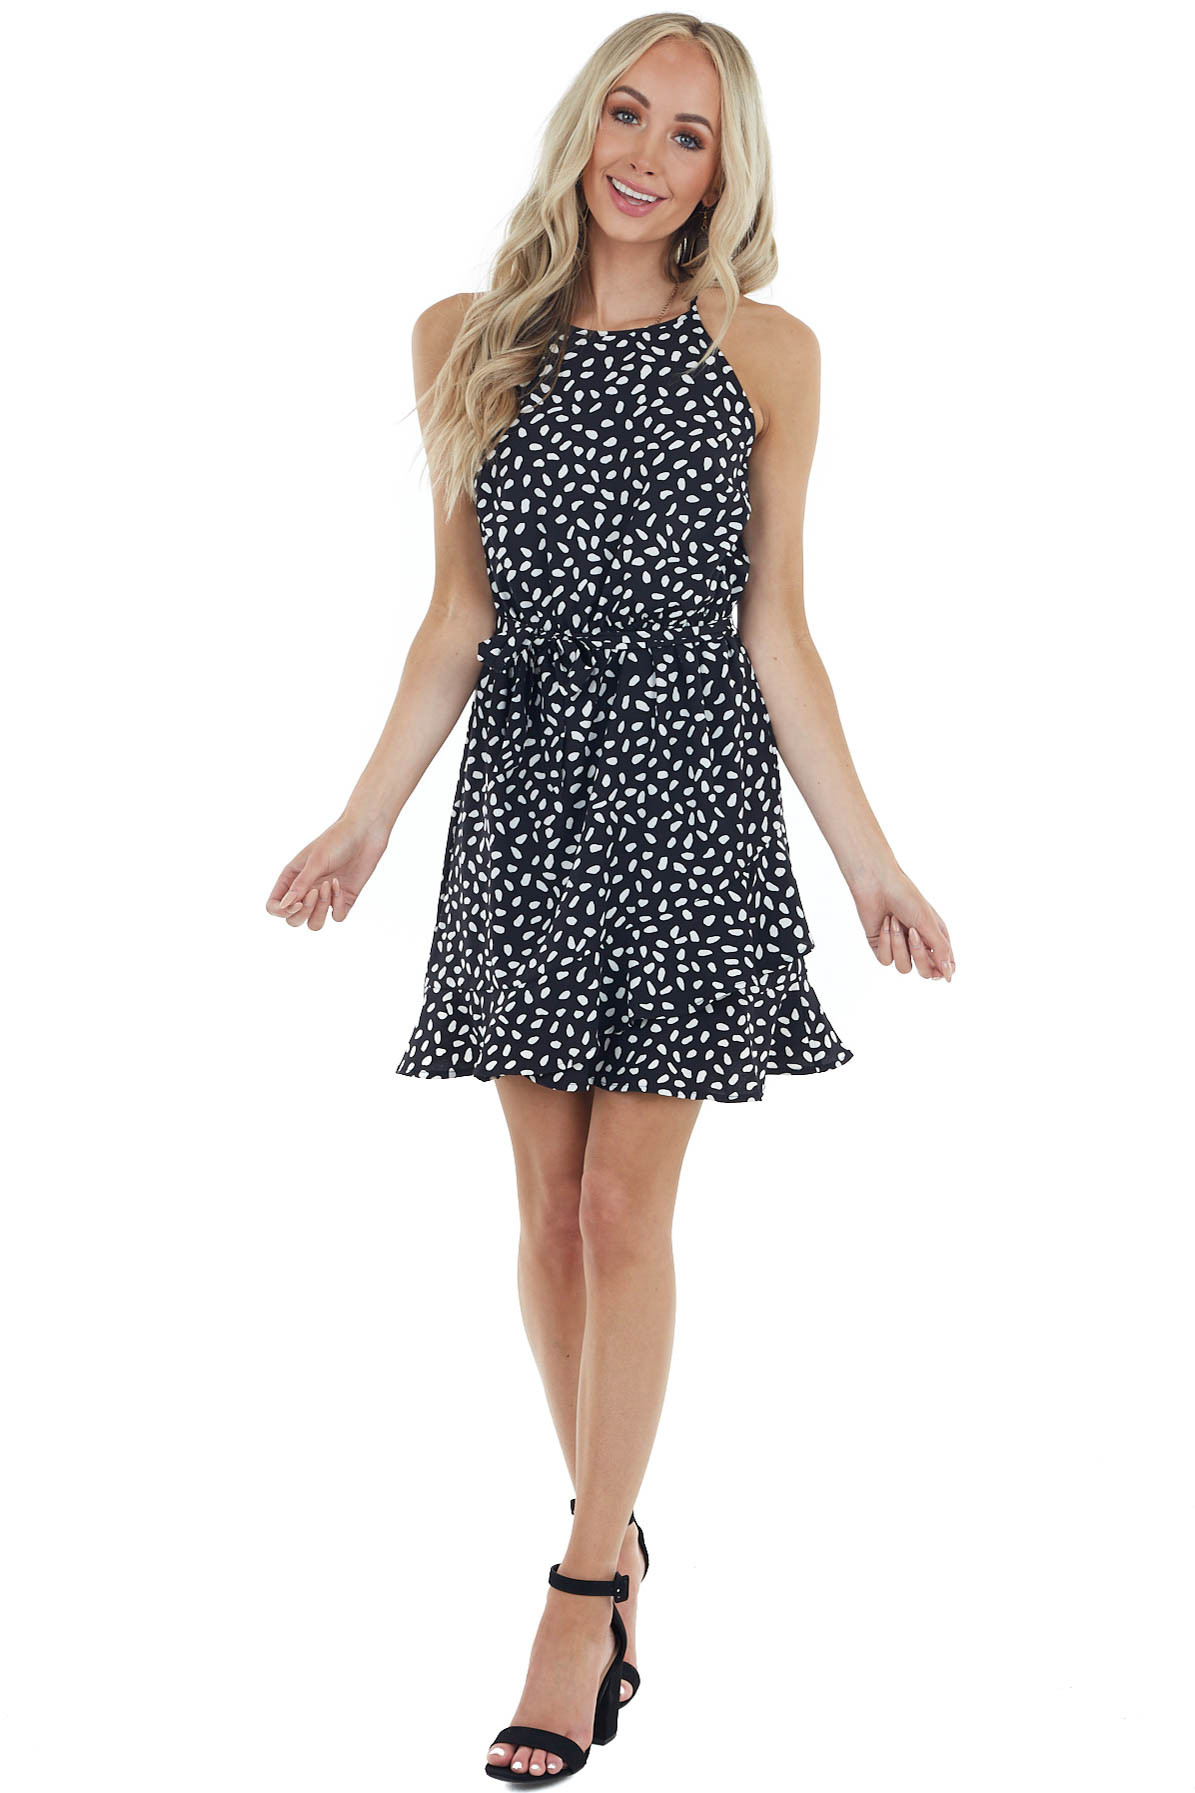 Black and White Spotted Sleeveless Dress with Waist Tie